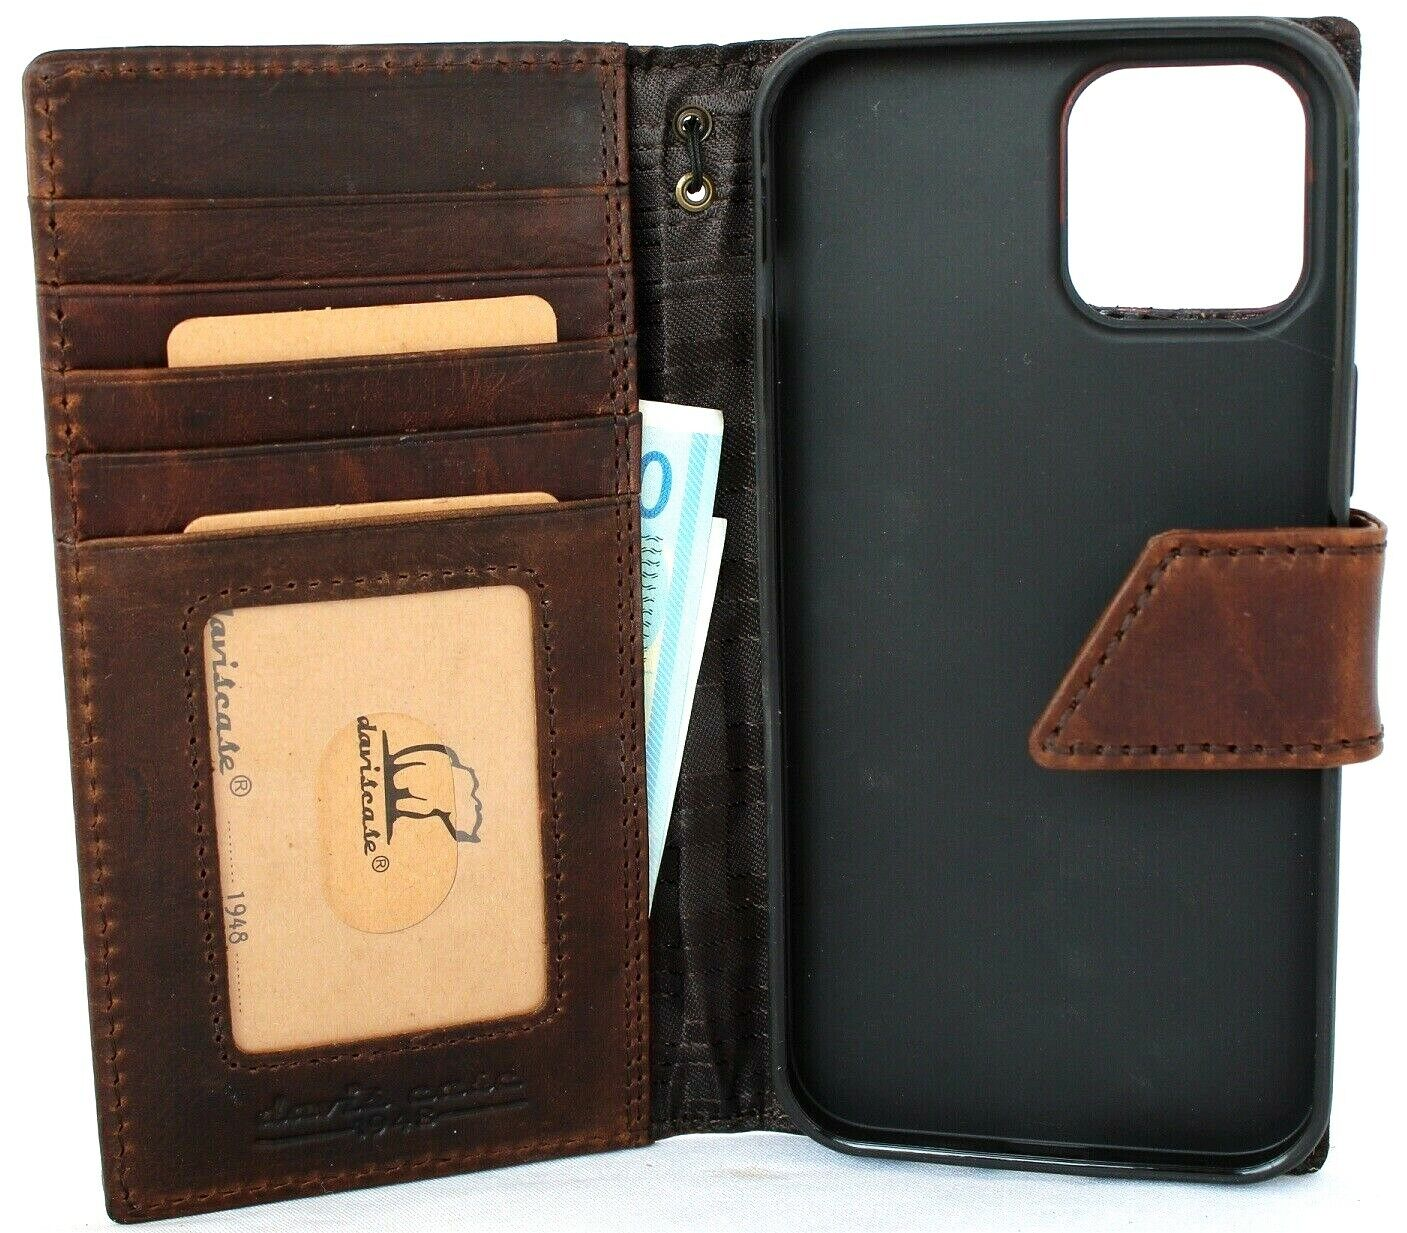 Image 71 - Genuine Leather Case For Apple iPhone 12 Pro Max Wallet Cover Book Vintage Jafo